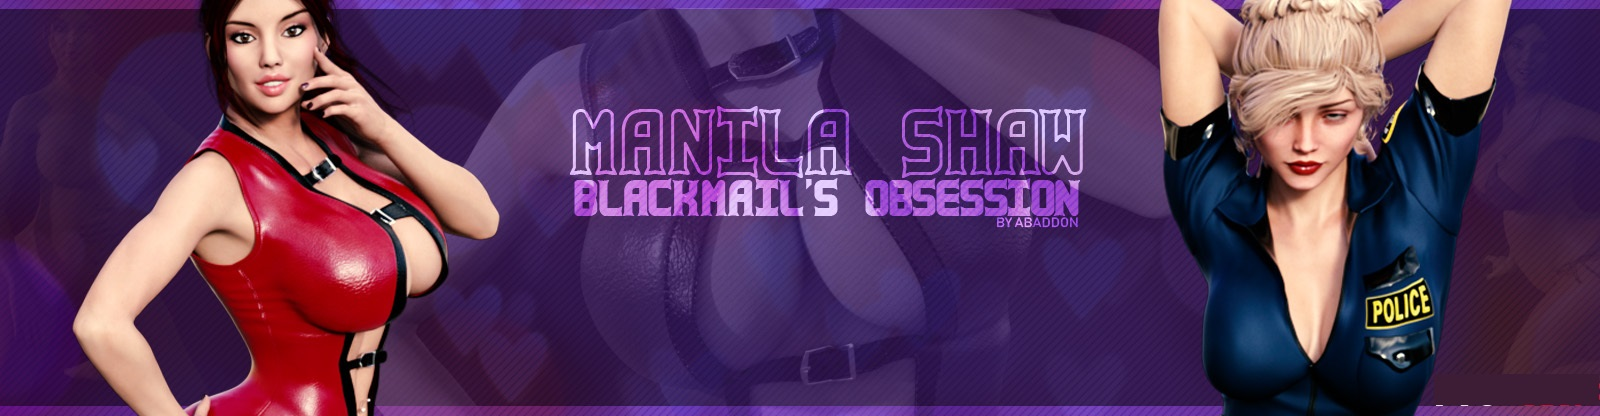 Manila Shaw: Blackmail's Obsession - Version 0.18